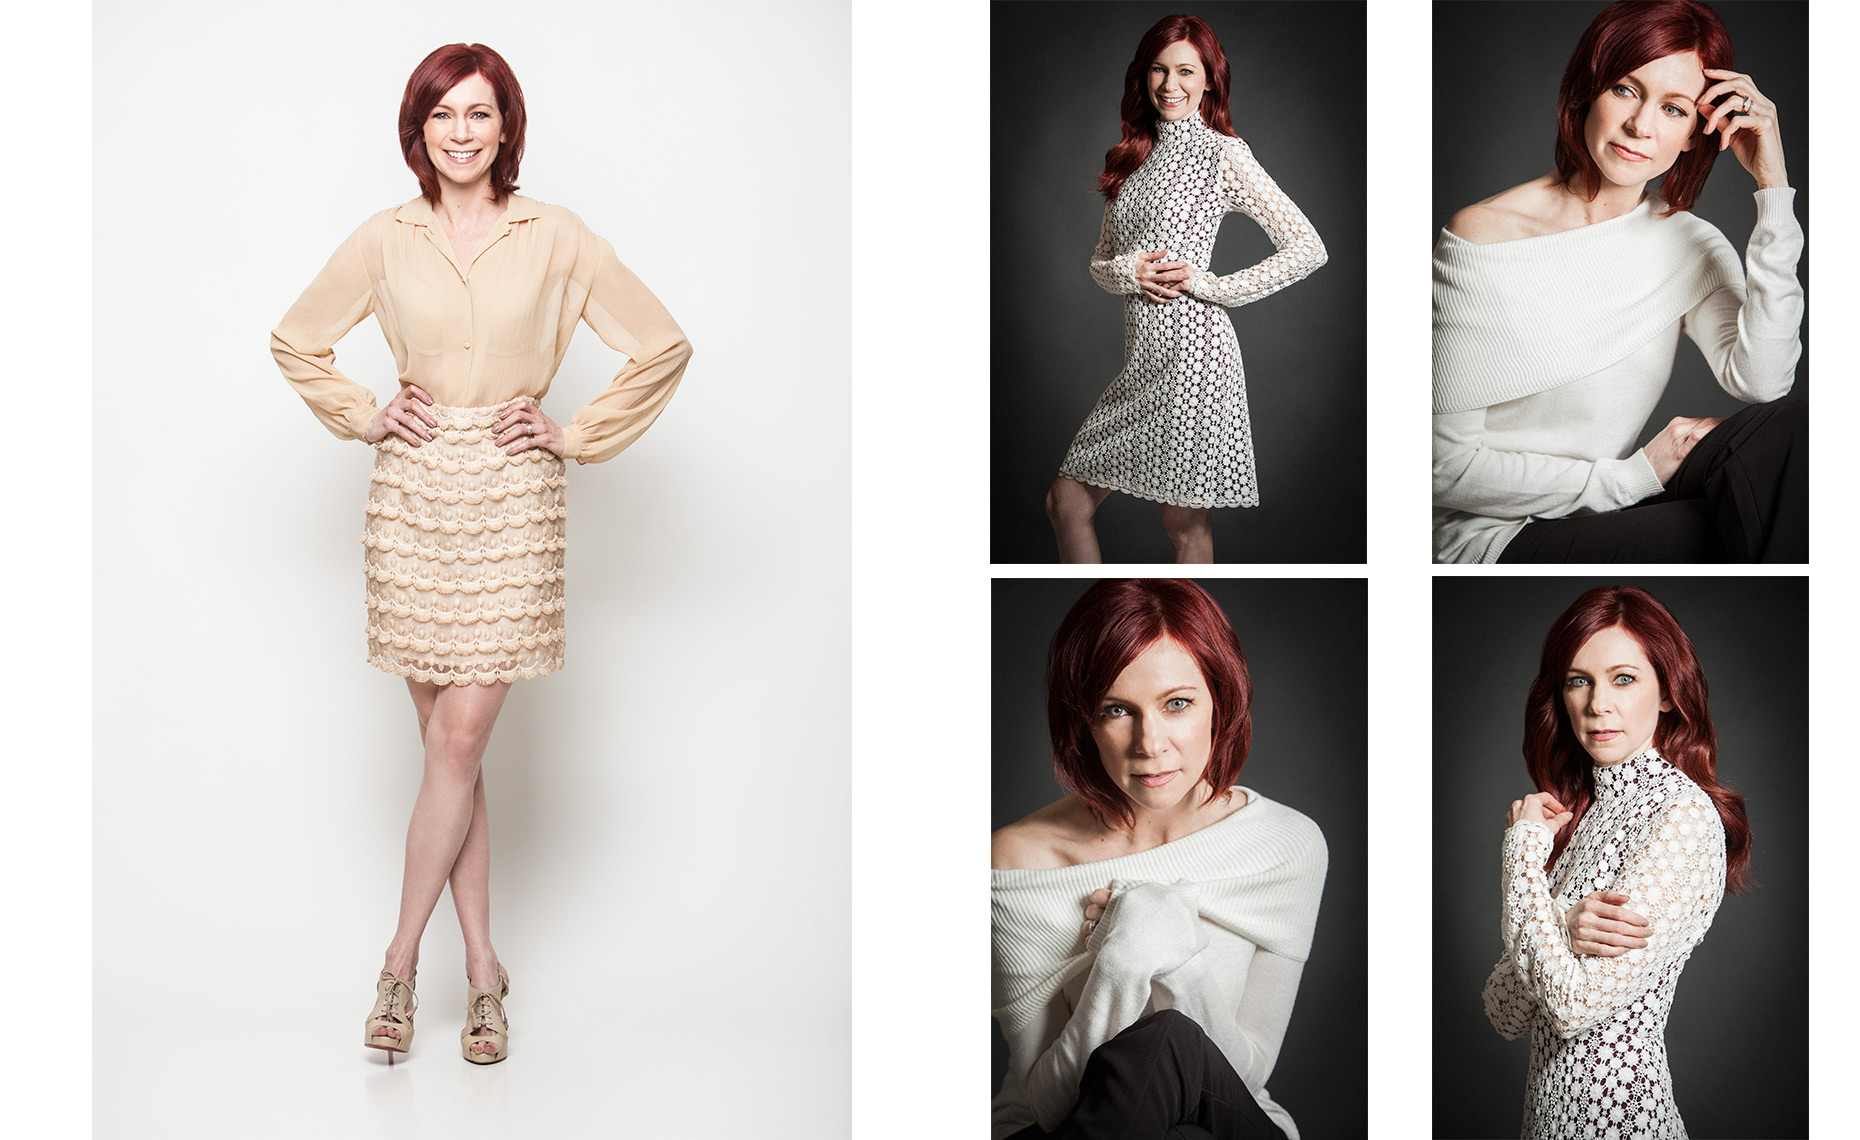 carriepreston01